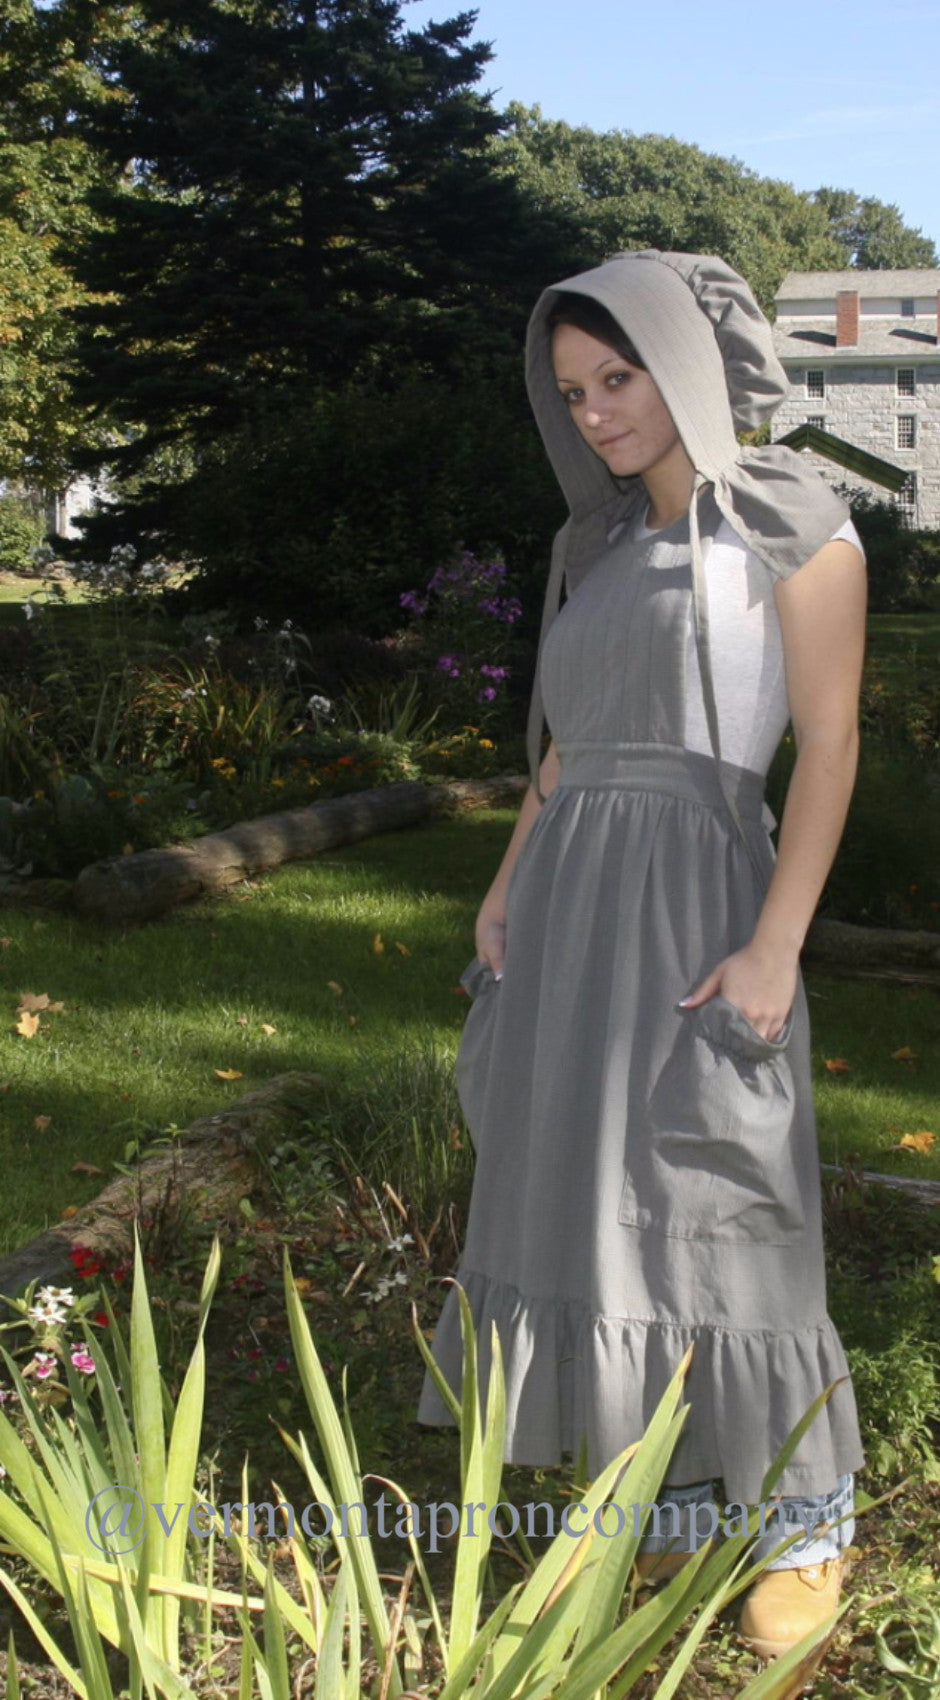 Prairie Apron in Country Blue 100% Cotton Homespun, front/ side view